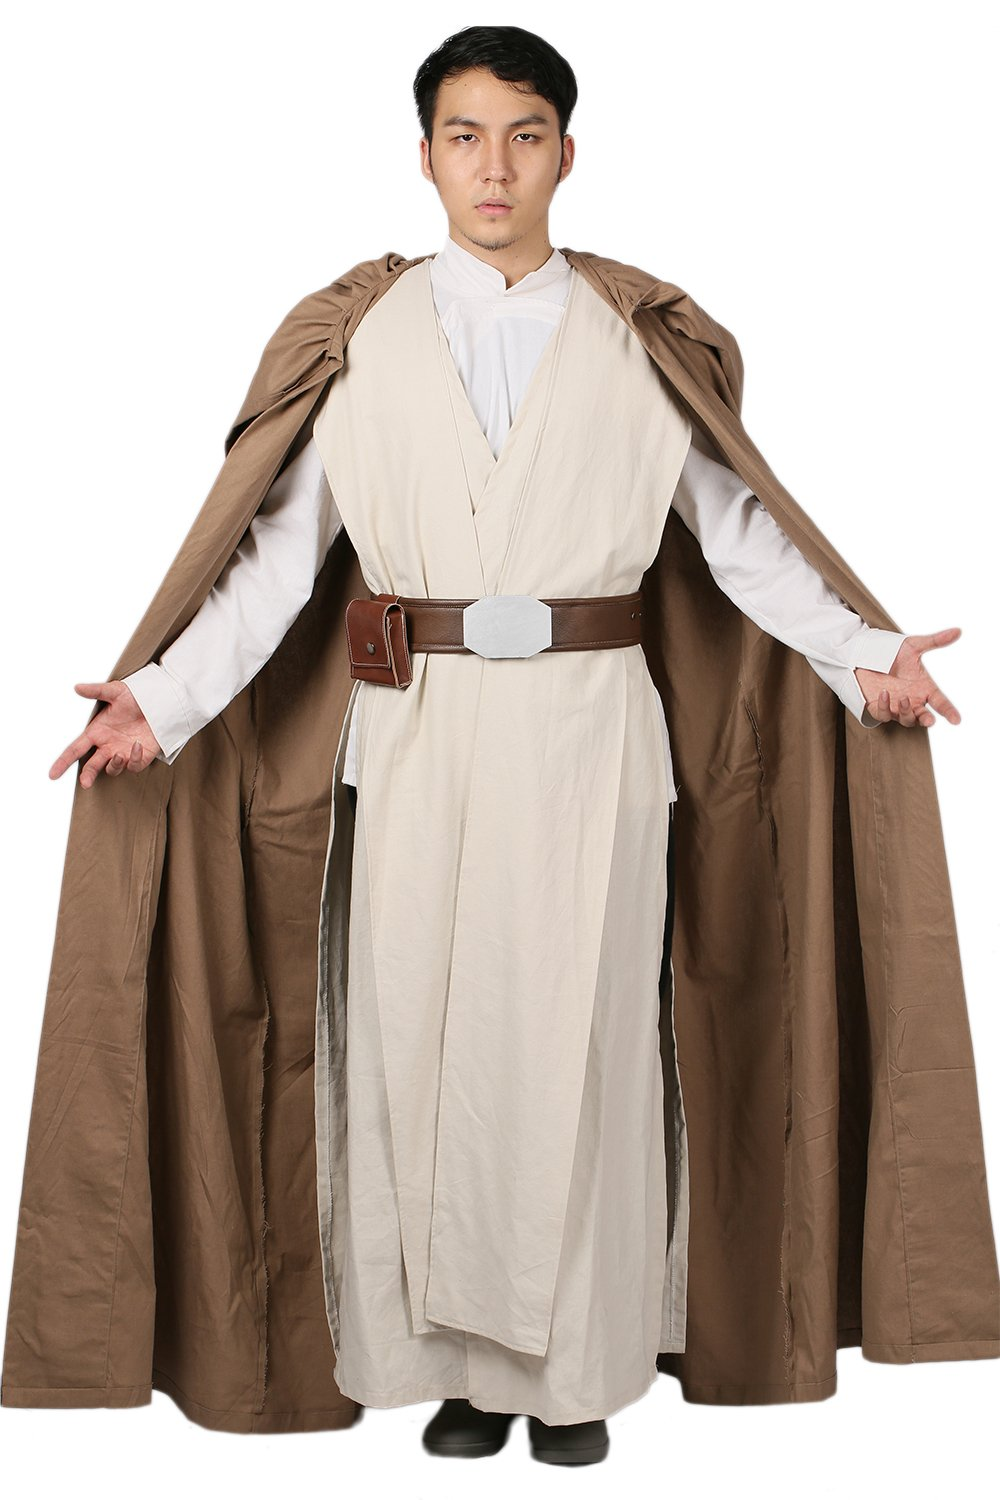 Xcostume Luke Costume Outfit Deluxe Cape Tunic Belt Adult Cosplay Suit L